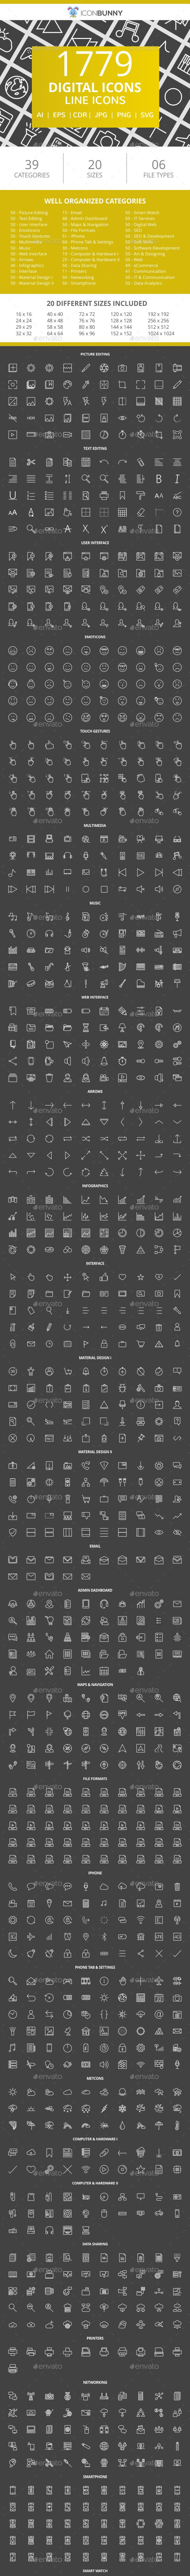 1779 Digital Line Inverted Icons - Icons